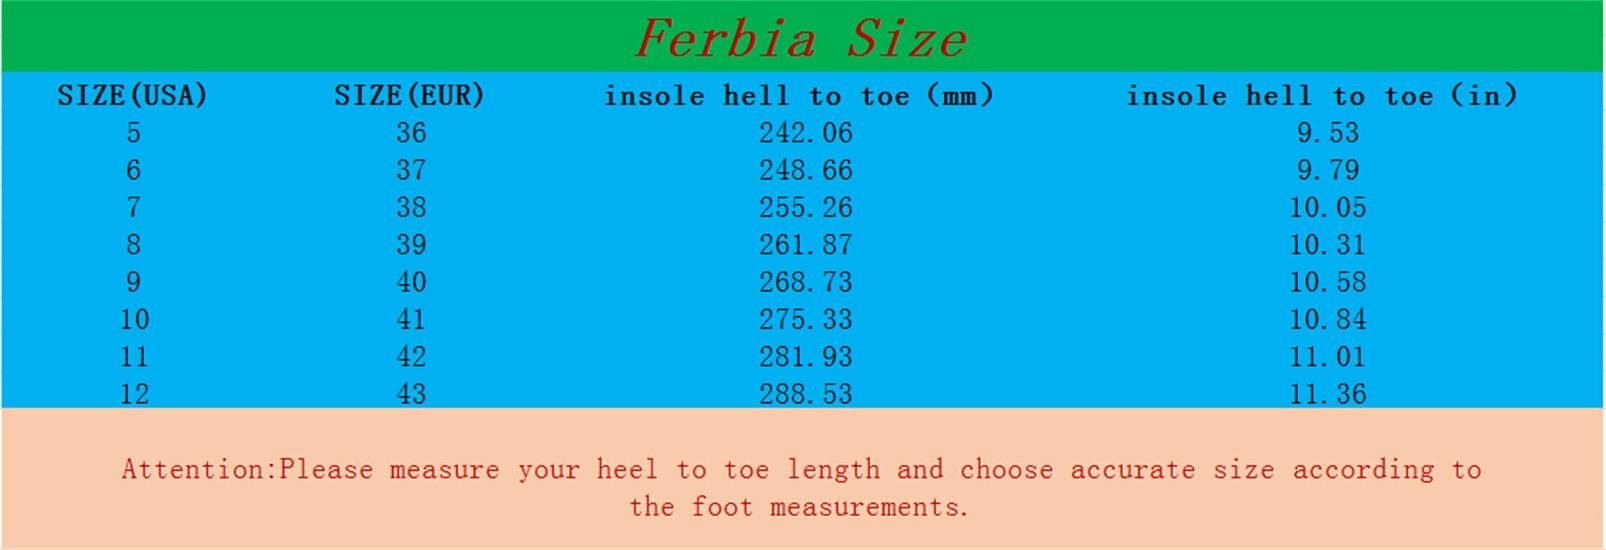 Ferbia Womens Summer Sandals Flat Ankle Buckle Criss Cross Gladiator Thong Flip Flop Casual shoes (10 B(M) US, Silvery) by Ferbia (Image #3)